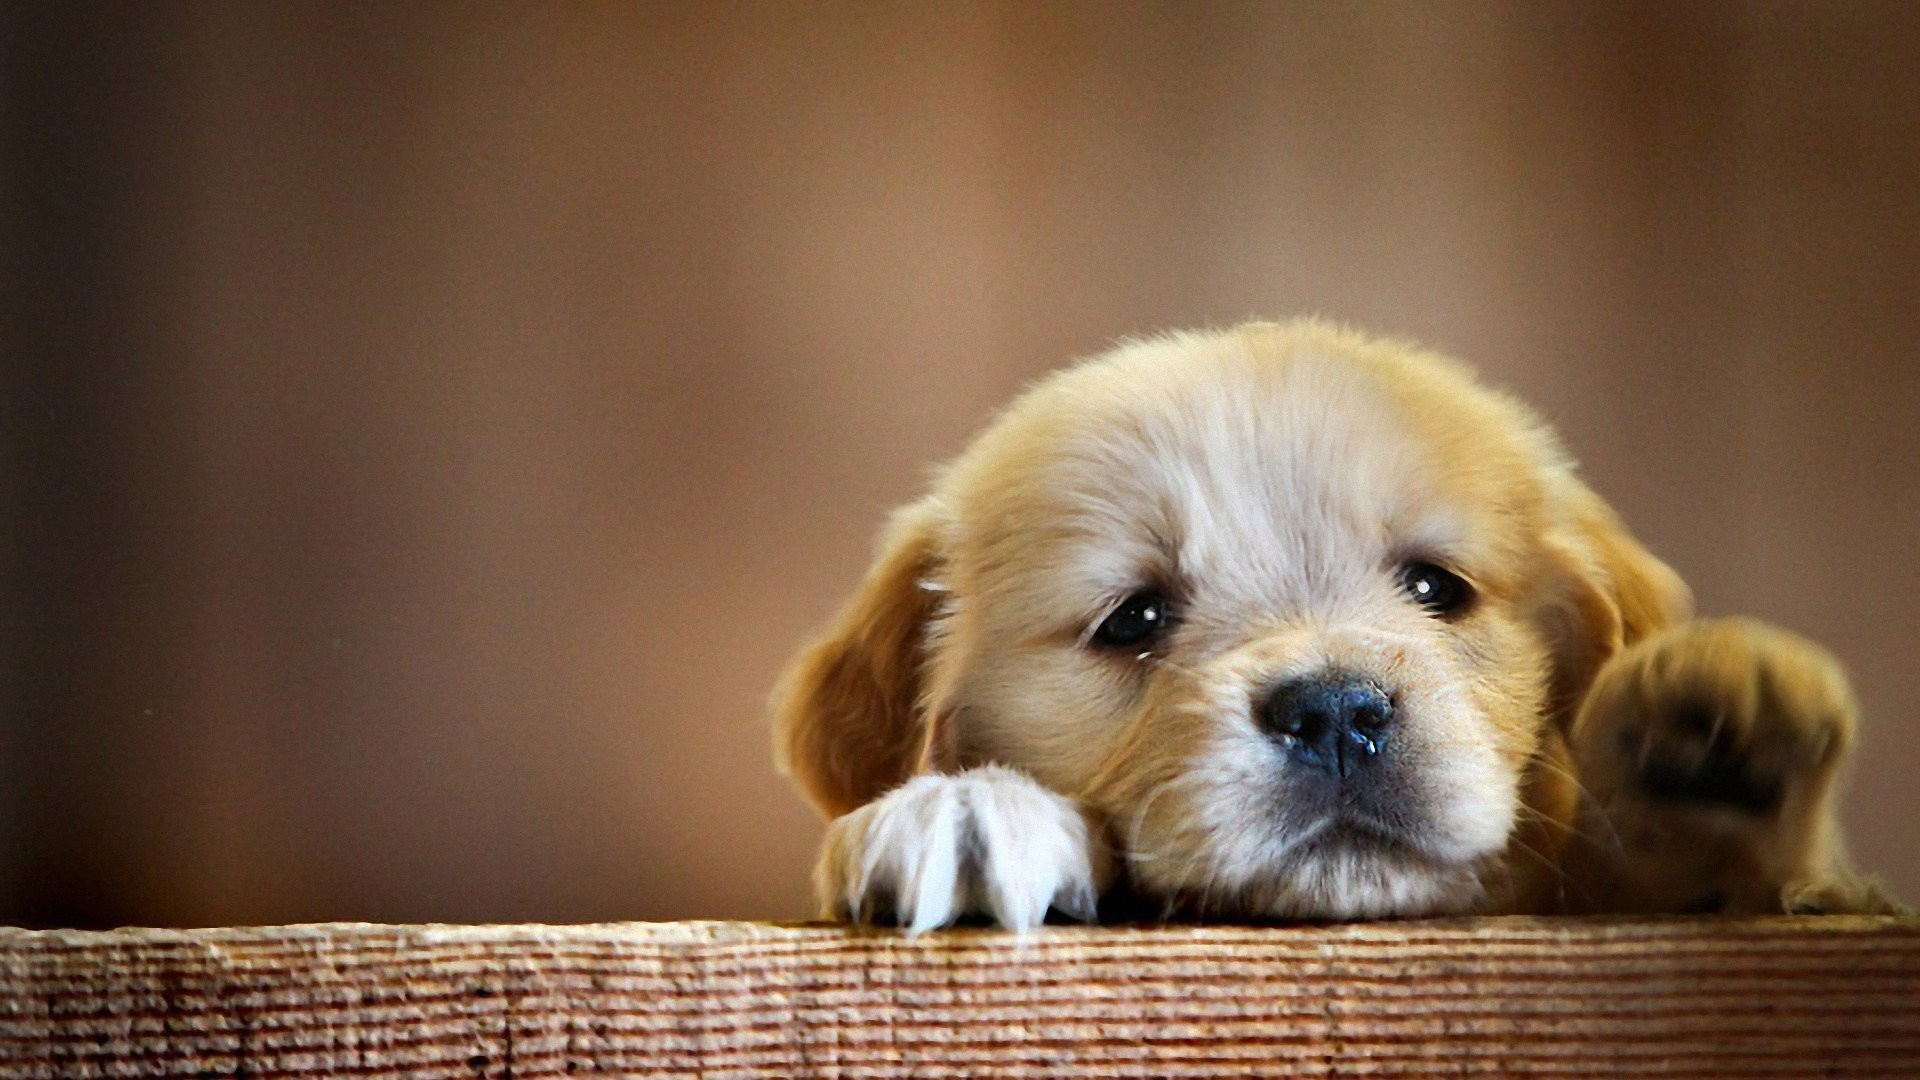 1920x1080 Puppy want to play animal cute baby dog wallpaper |  .